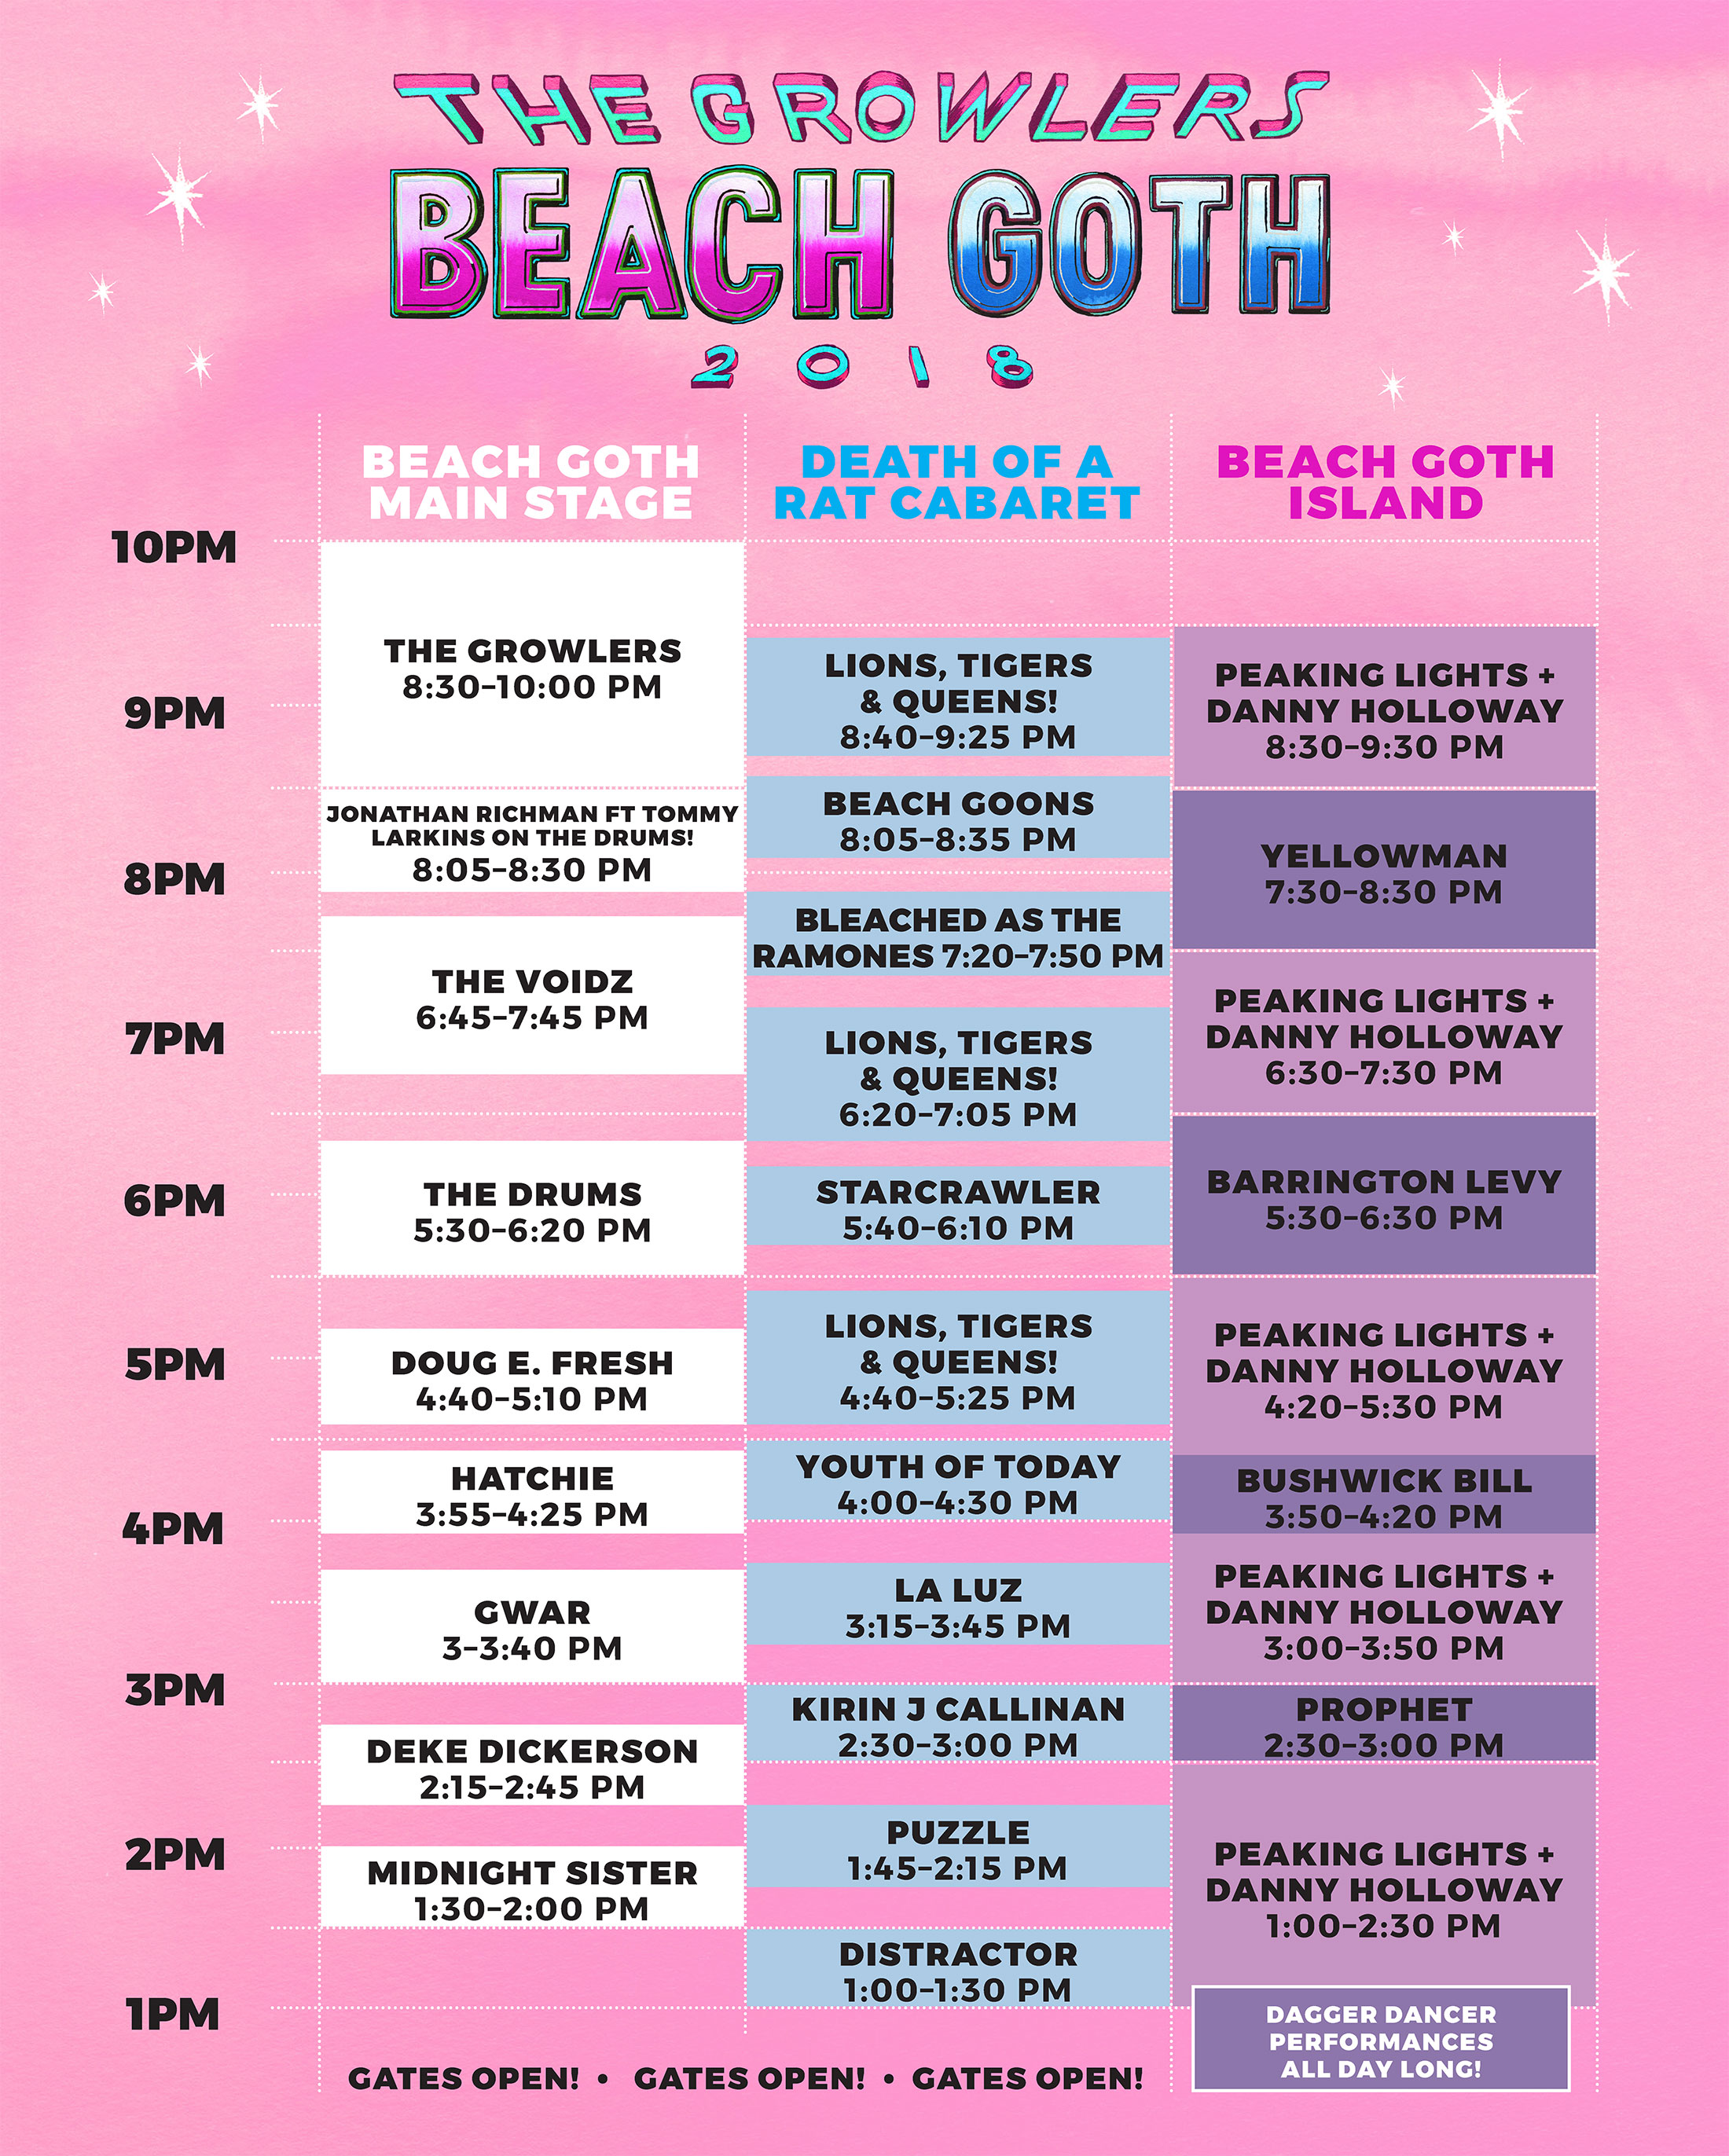 the growlers beach goth schedule